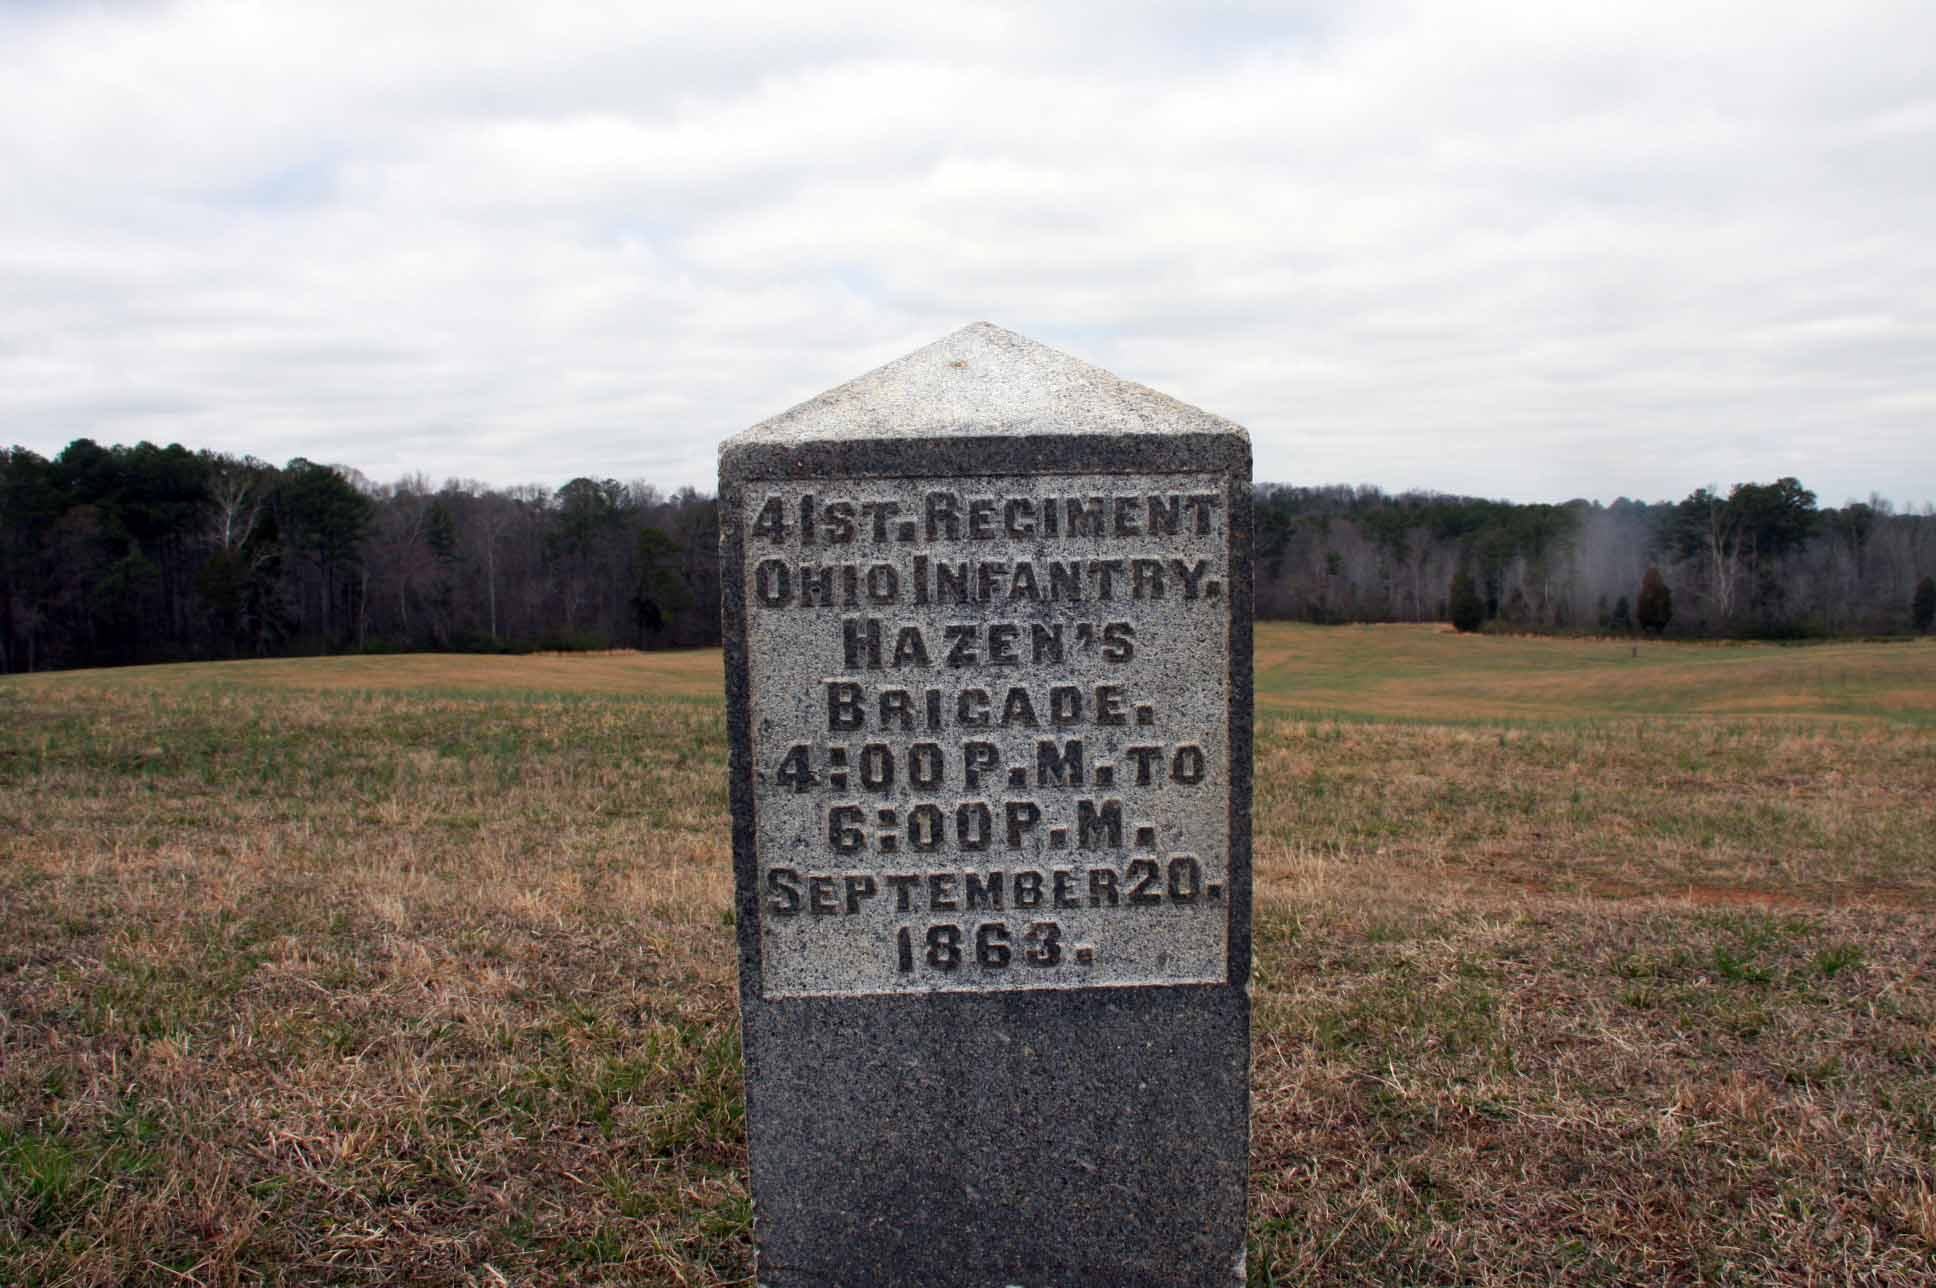 41st Ohio Infantry Regiment Marker, click photo to enlarge.